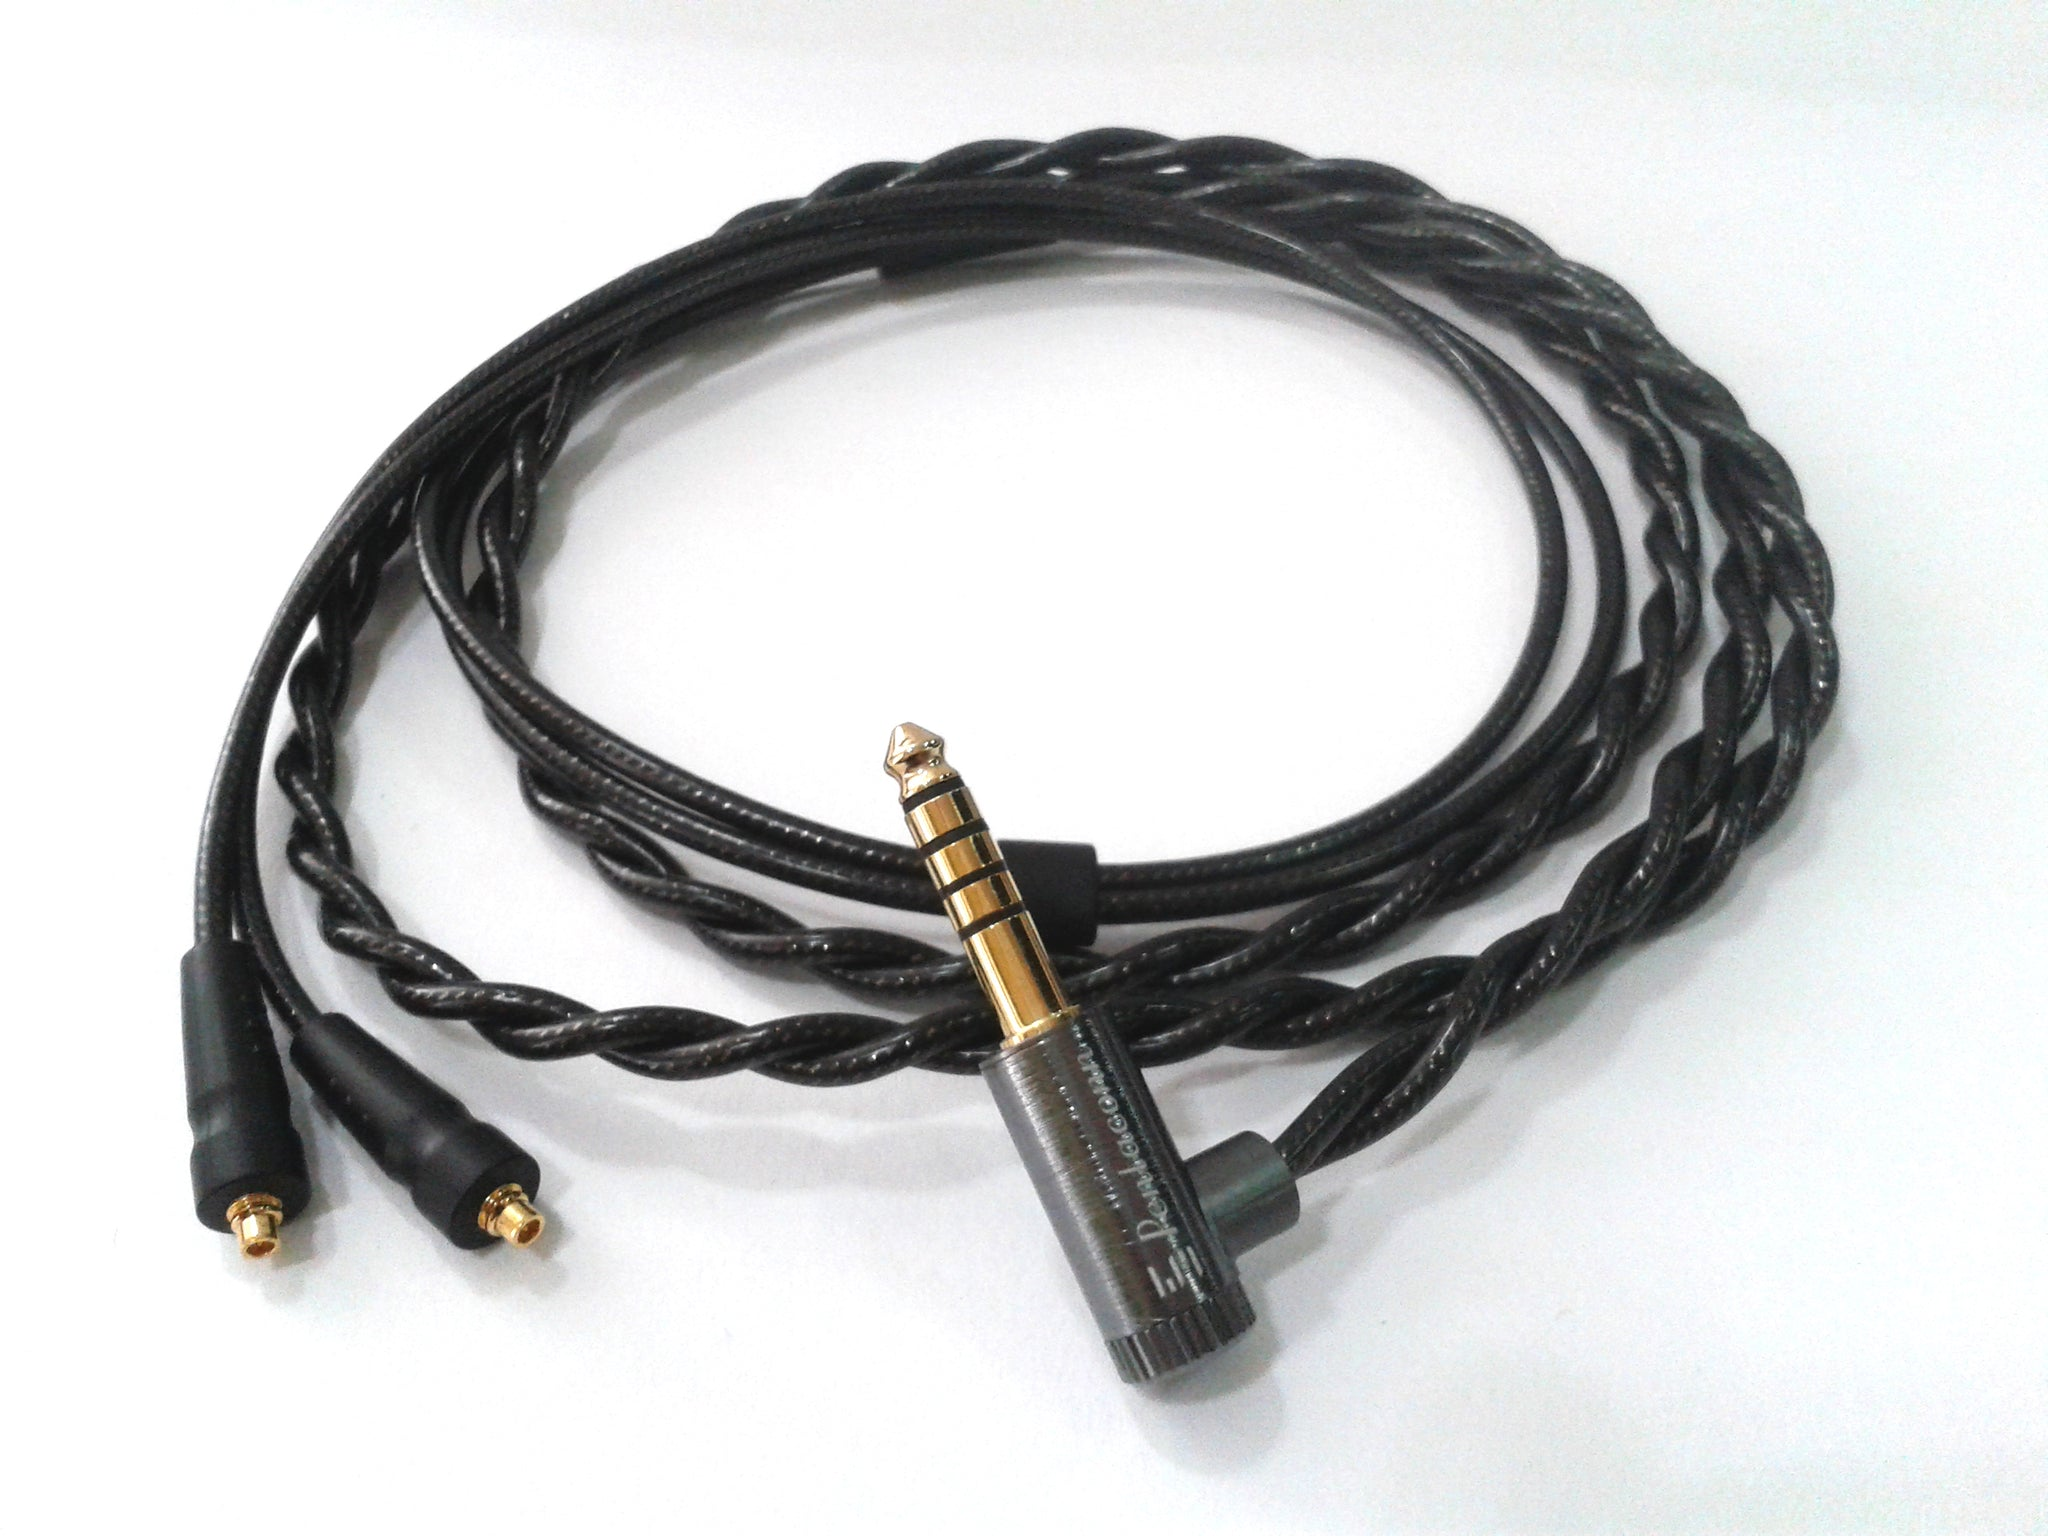 Acoustune ARC MMCX Cable - Jaben - The Little Headphone Store